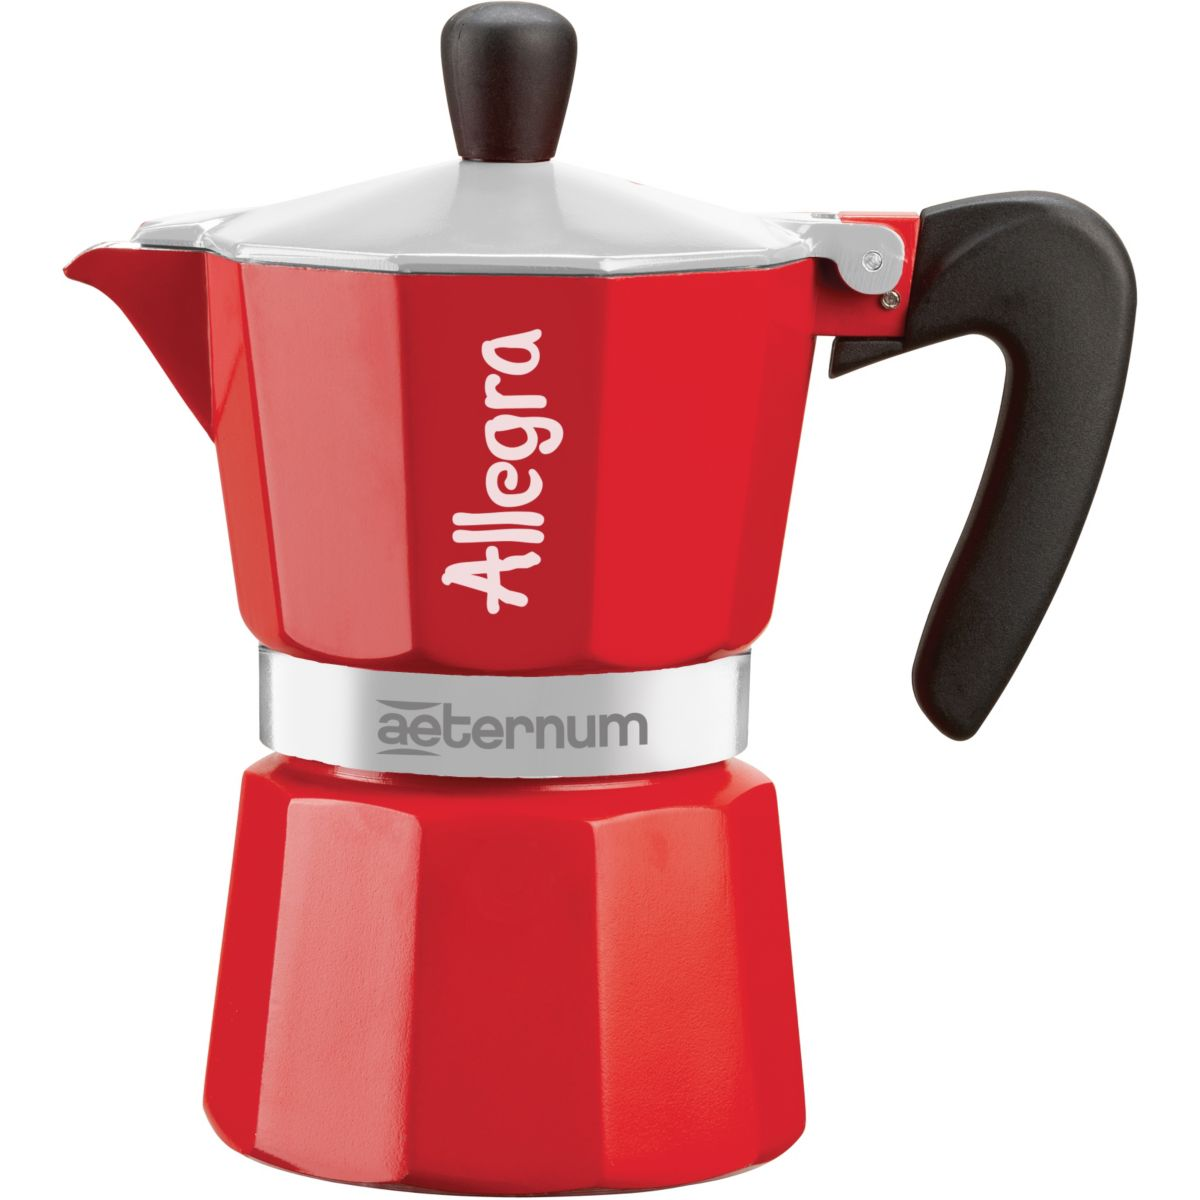 Cafetière bialetti allegra in sleeve 6 t (photo)